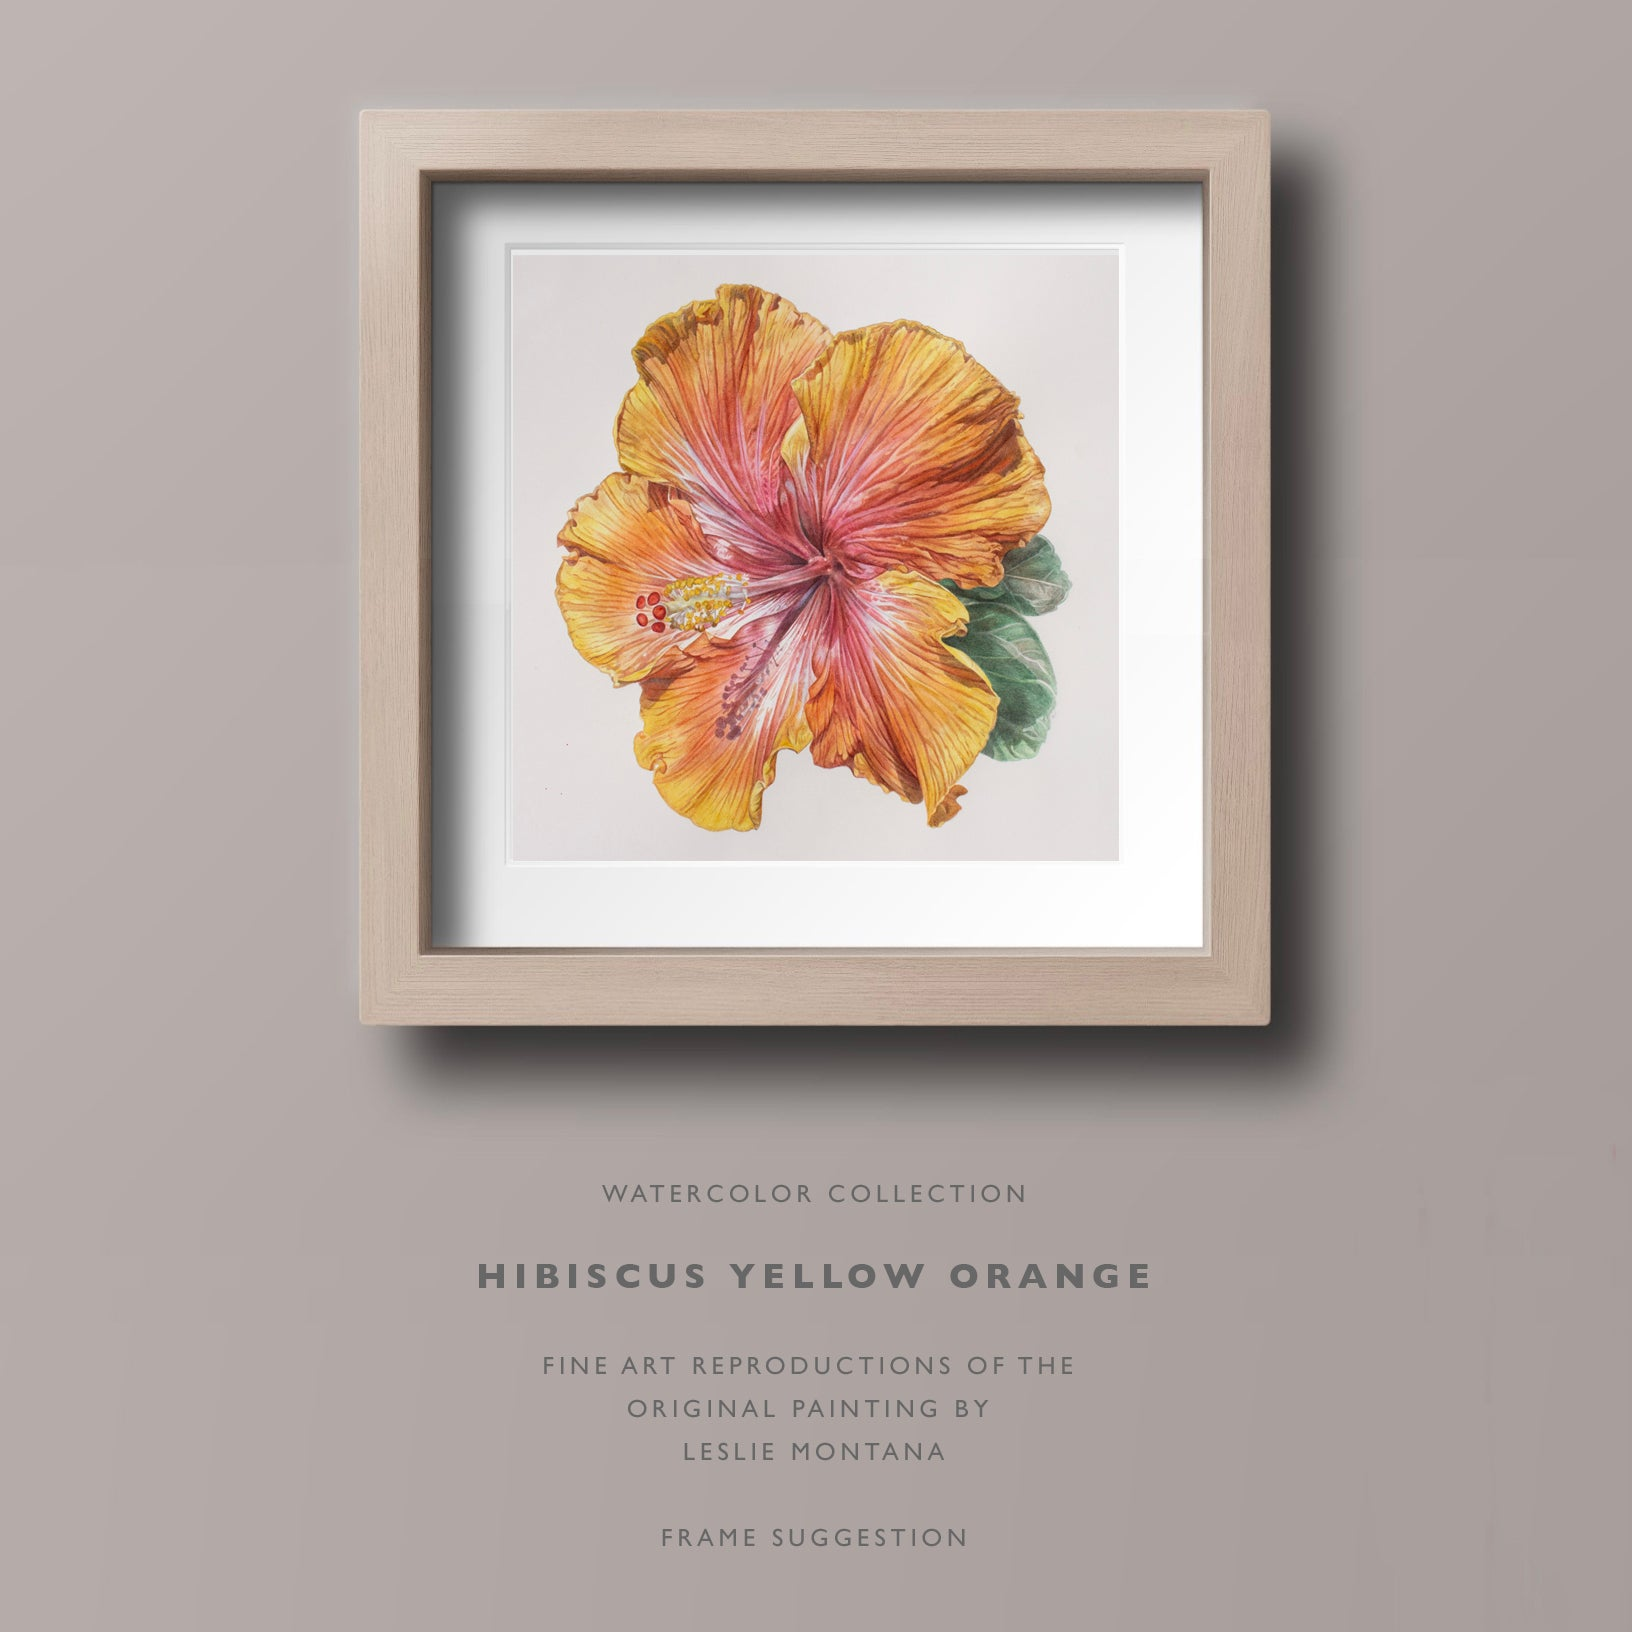 Shop Hibiscus fine art reproductions, giclee prints of the original watercolor painting by Leslie Montana